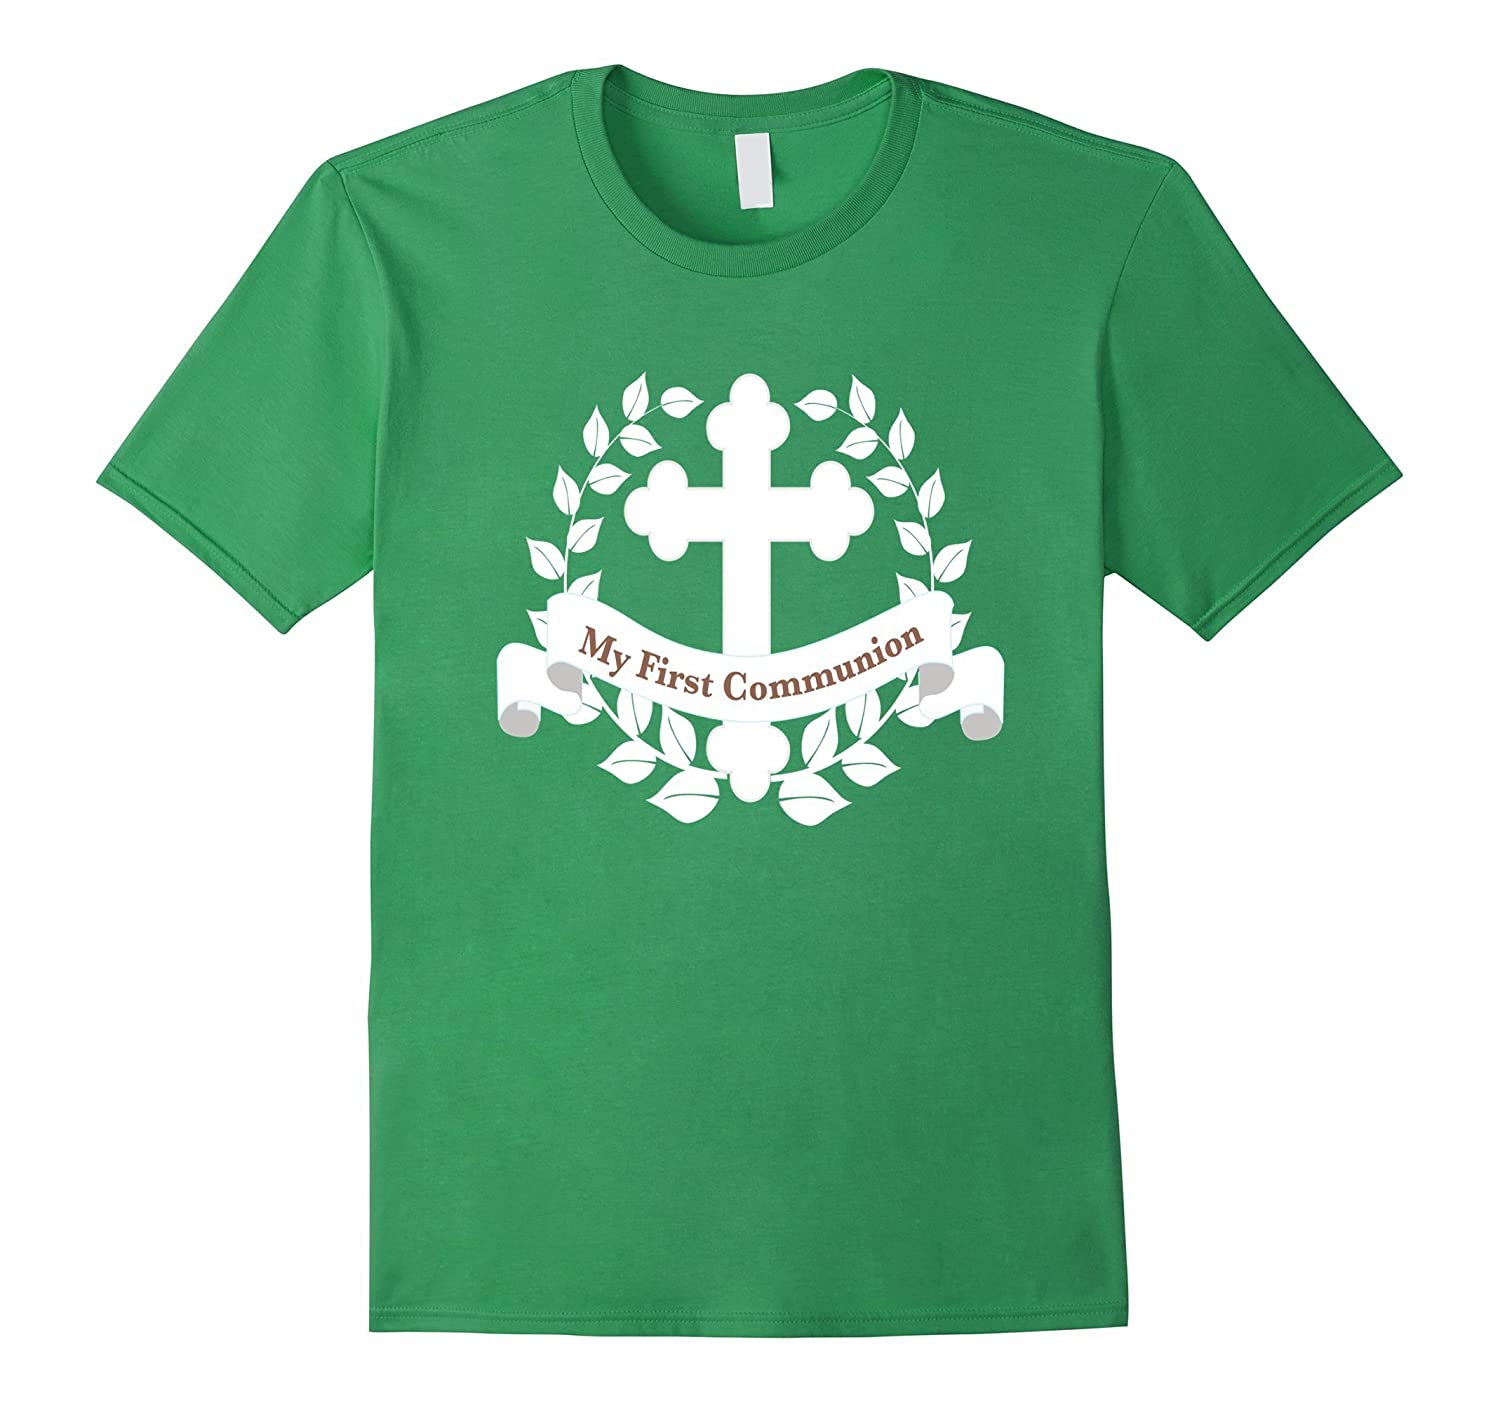 6dedf6eb8 First Communion Shirt Gift Kids Son Daughter Boutique Cross-TD – Teedep